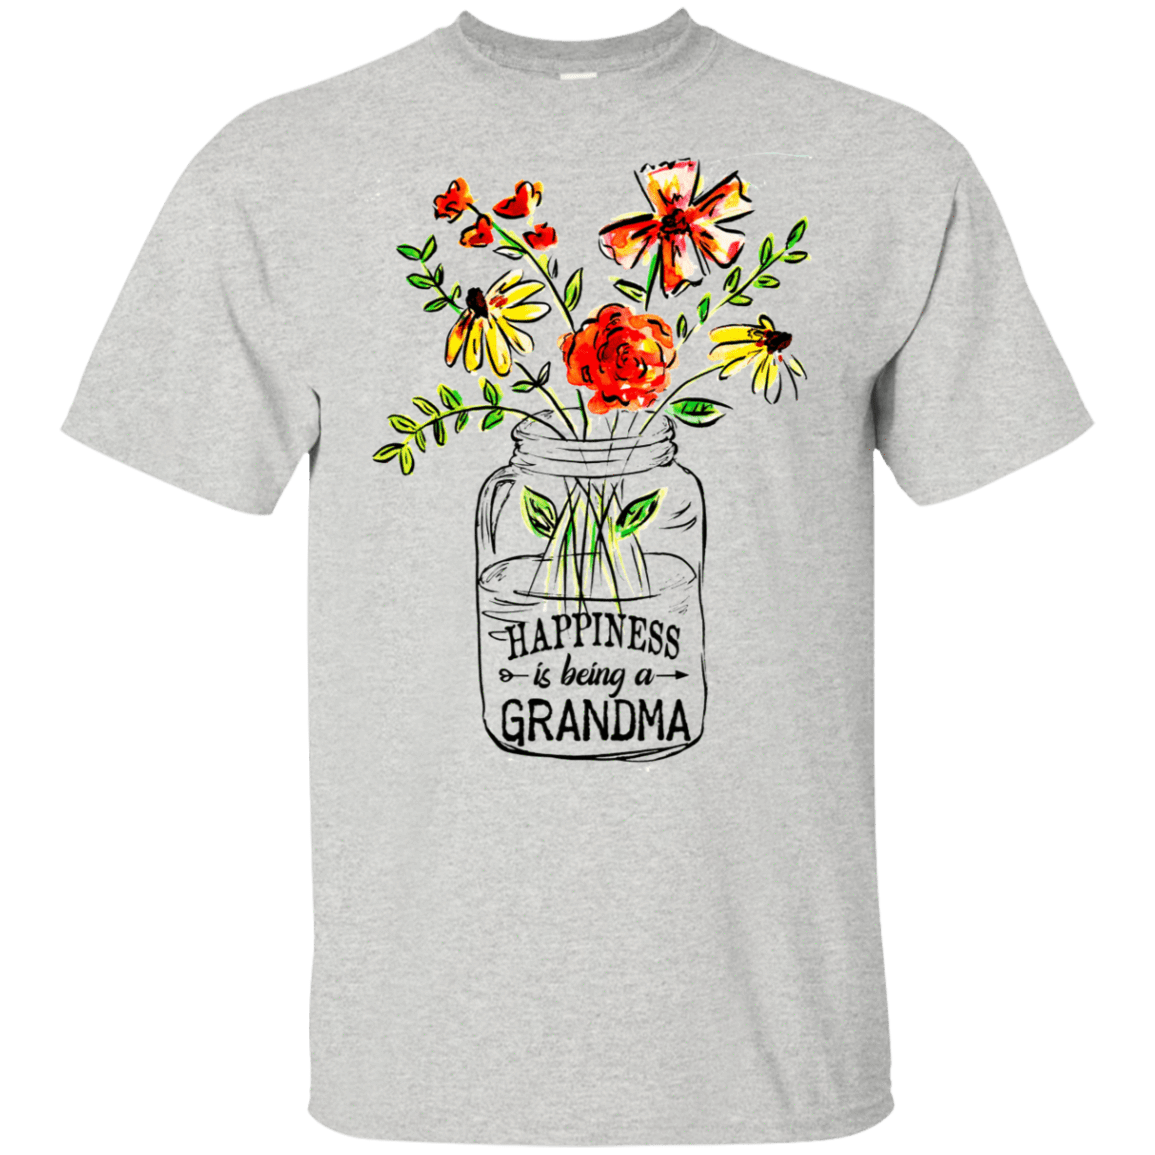 Happiness Is Being A Grandma Flower 22-2475-74332699-12568 - Tee Ript